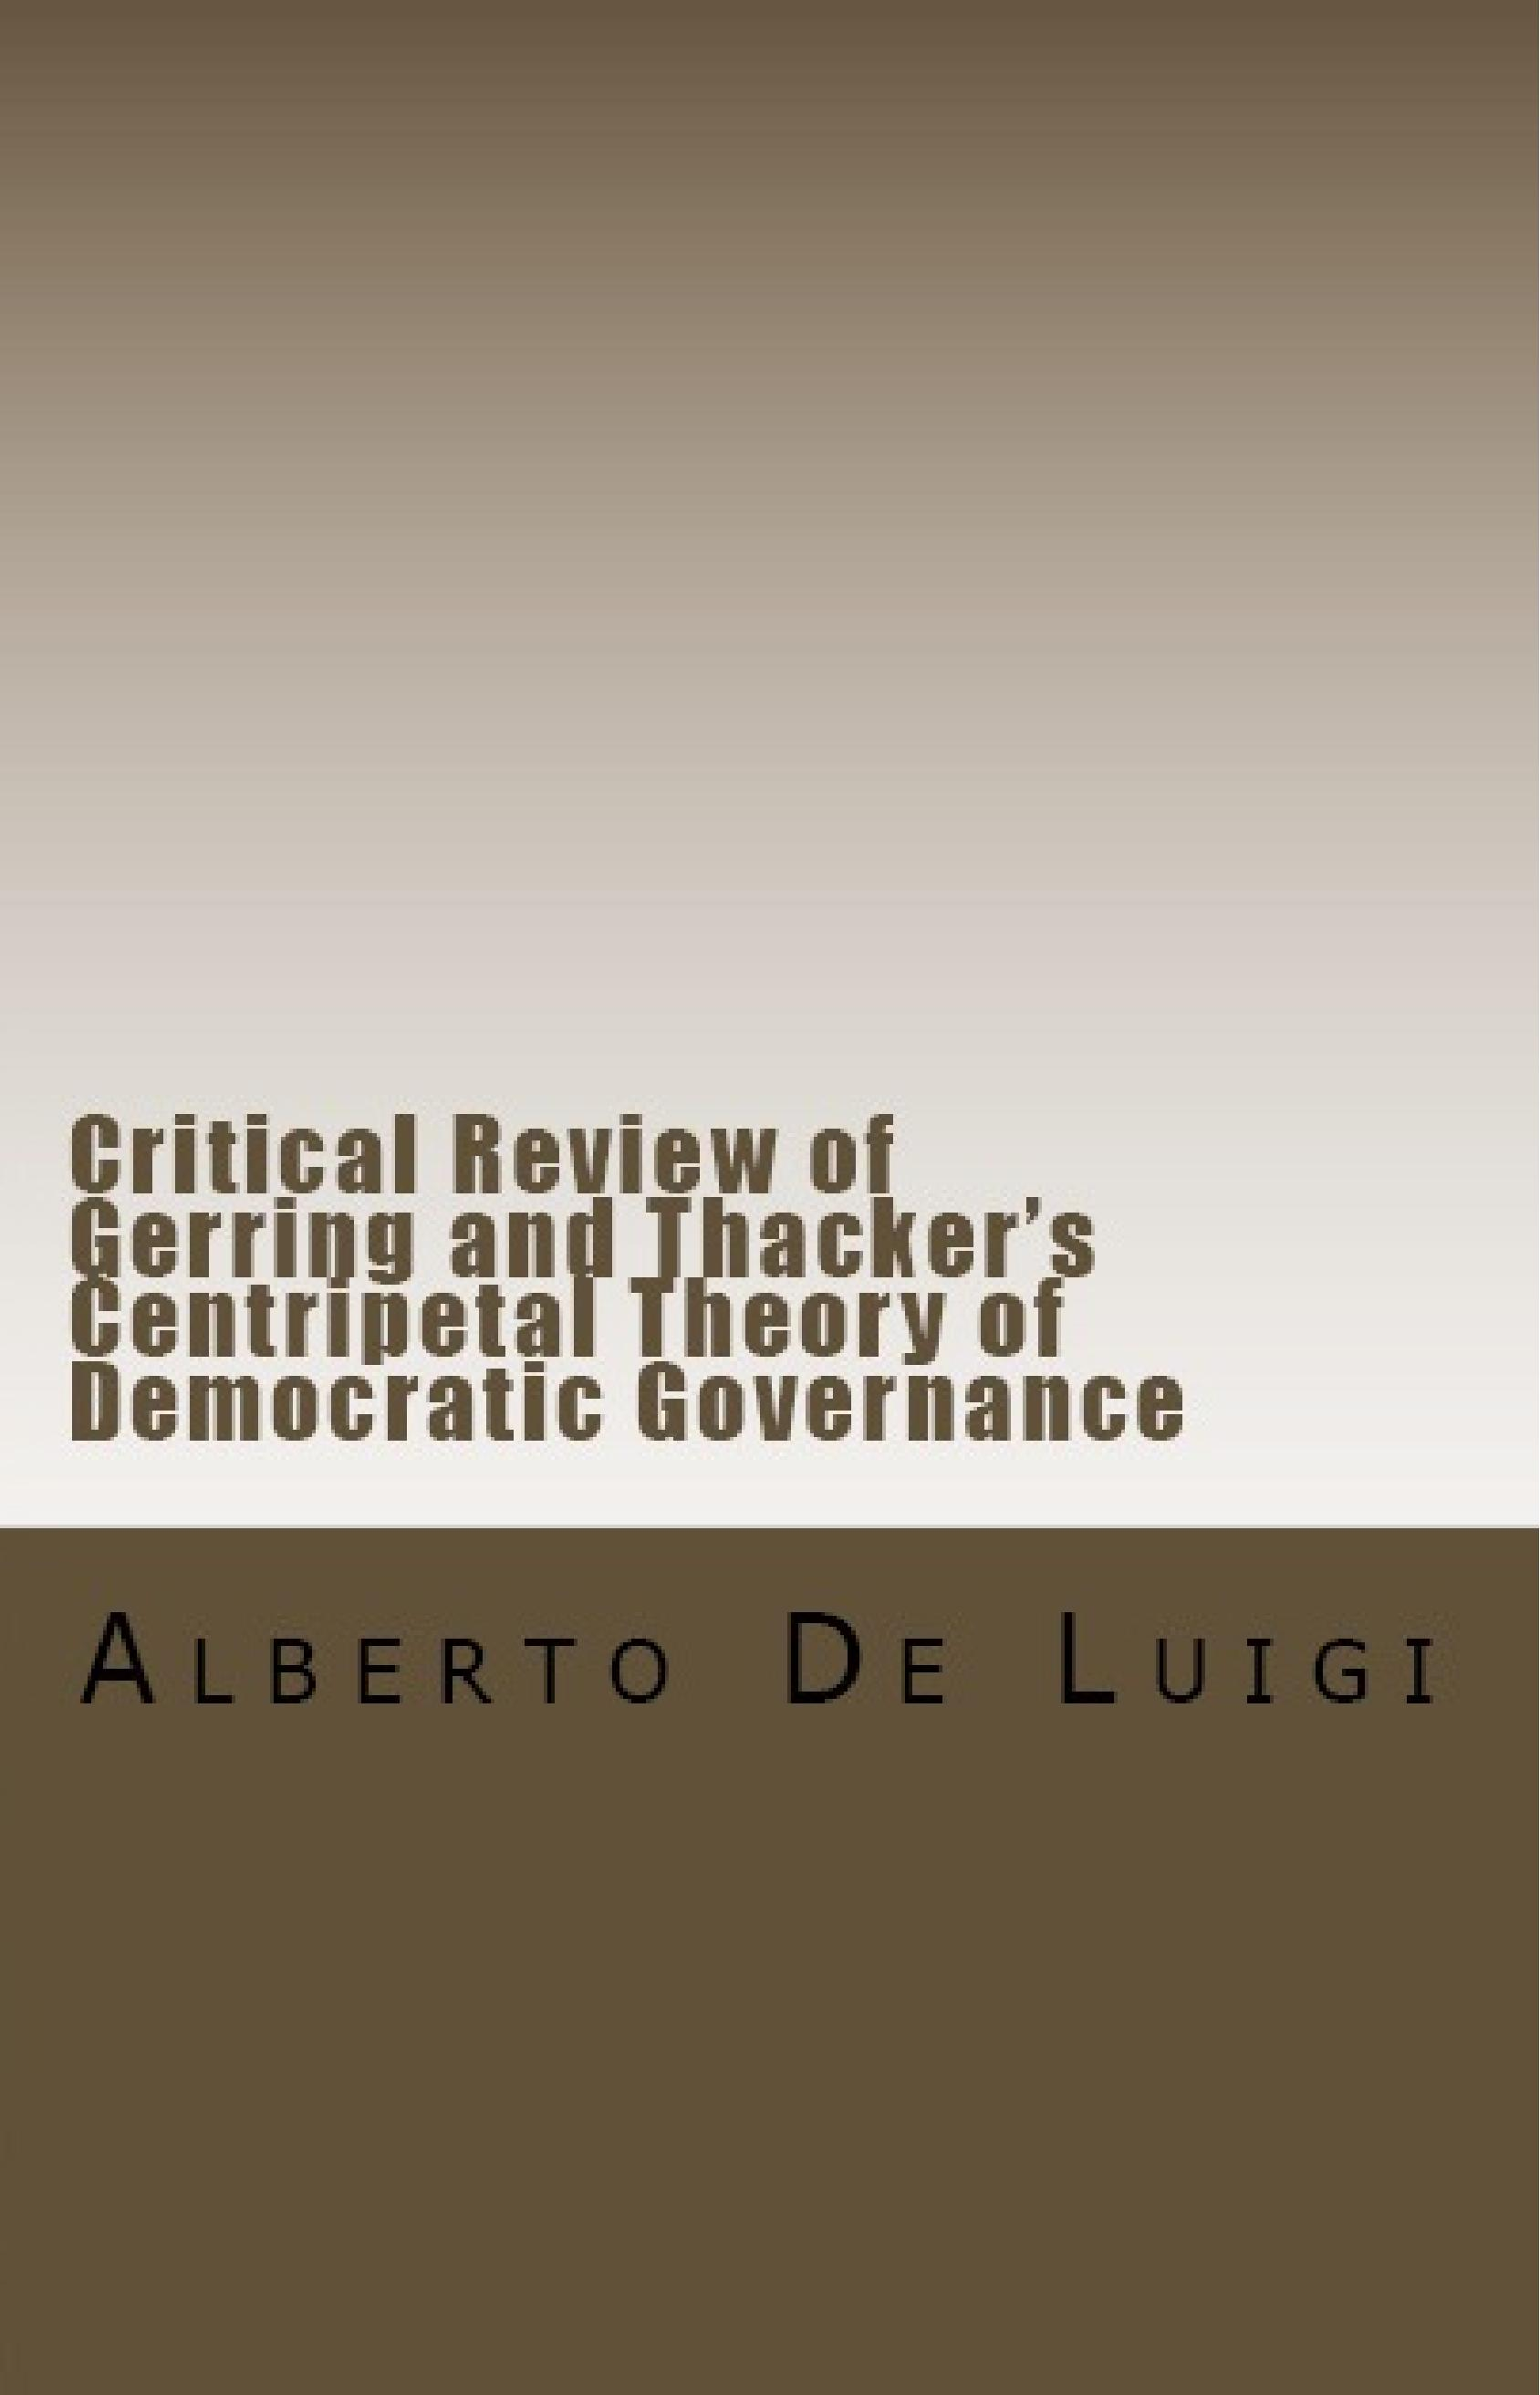 Critical Review of Gerring and Thacker Centripetal Theory of Democratic Governance - Alberto De Luigi-page-001